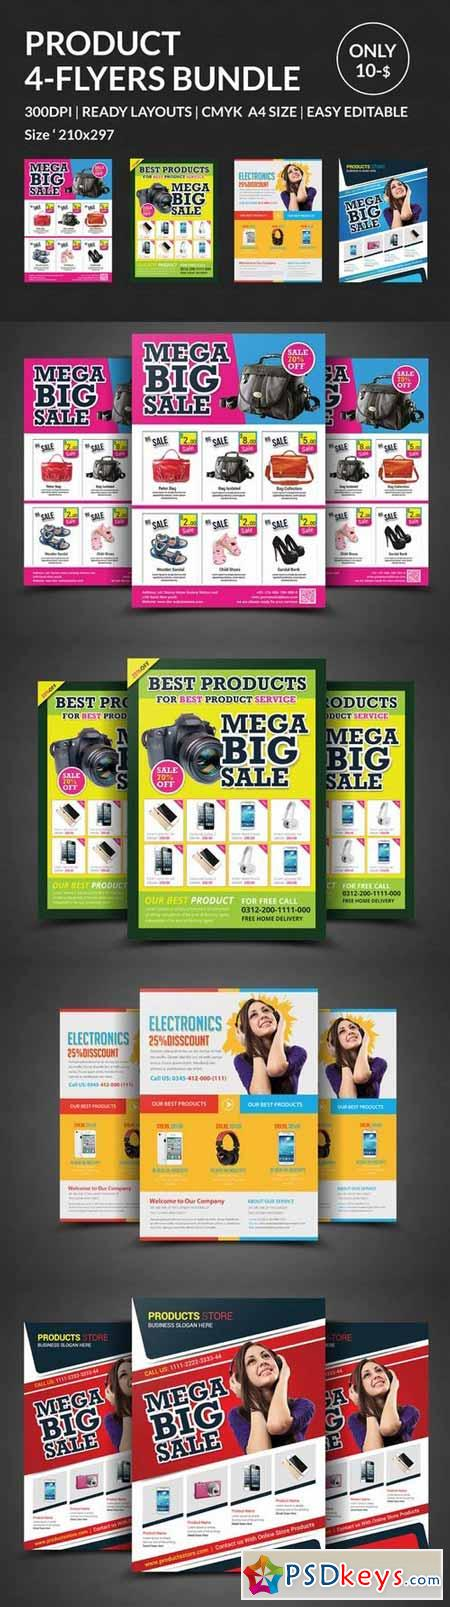 Product Promotion Flyer Bundle 330287